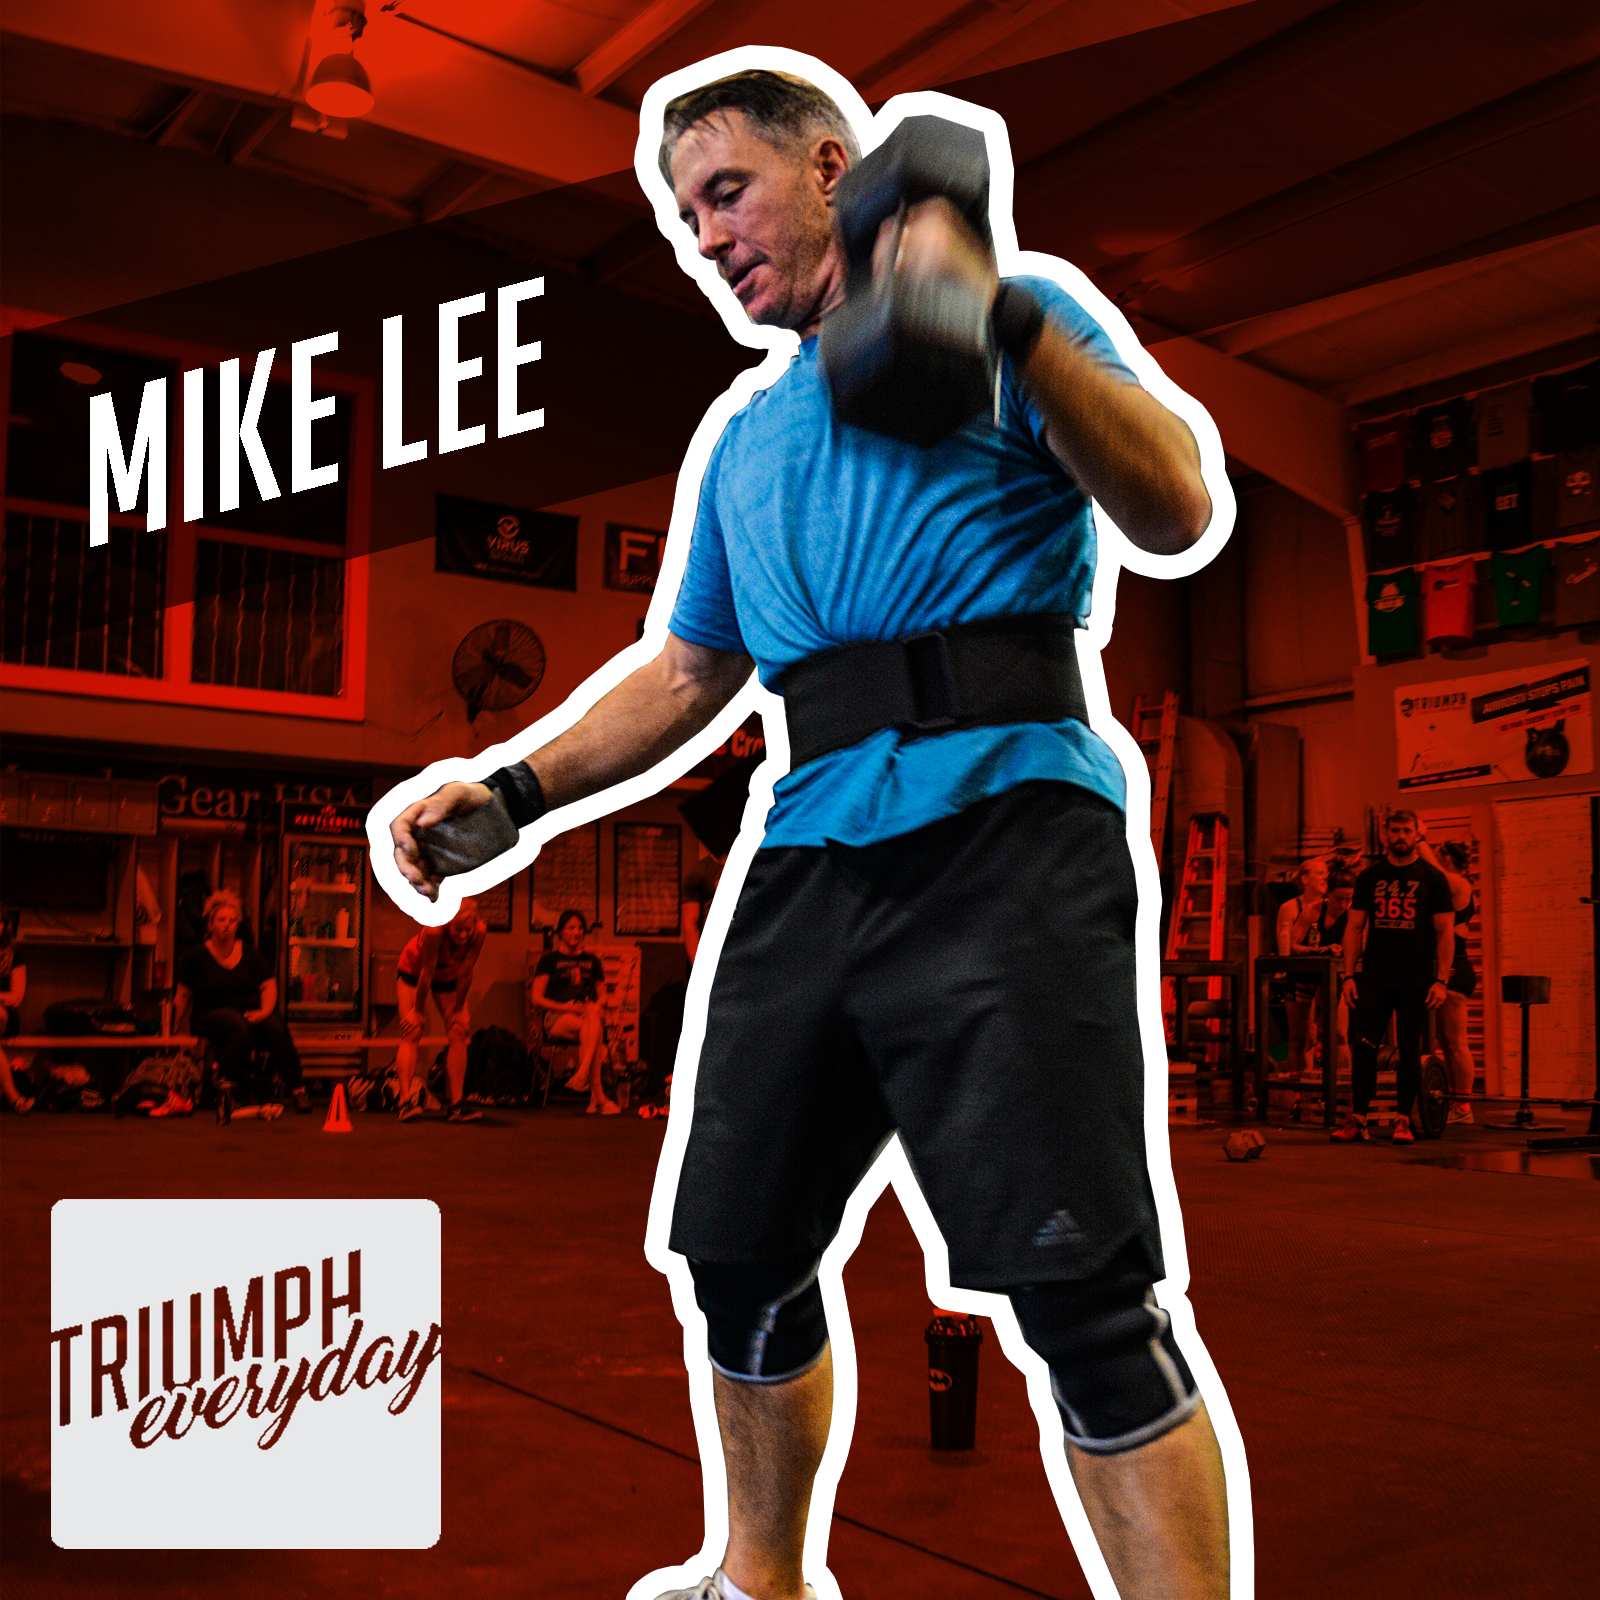 Triumph Everyday Template Soundcloud MikeLee